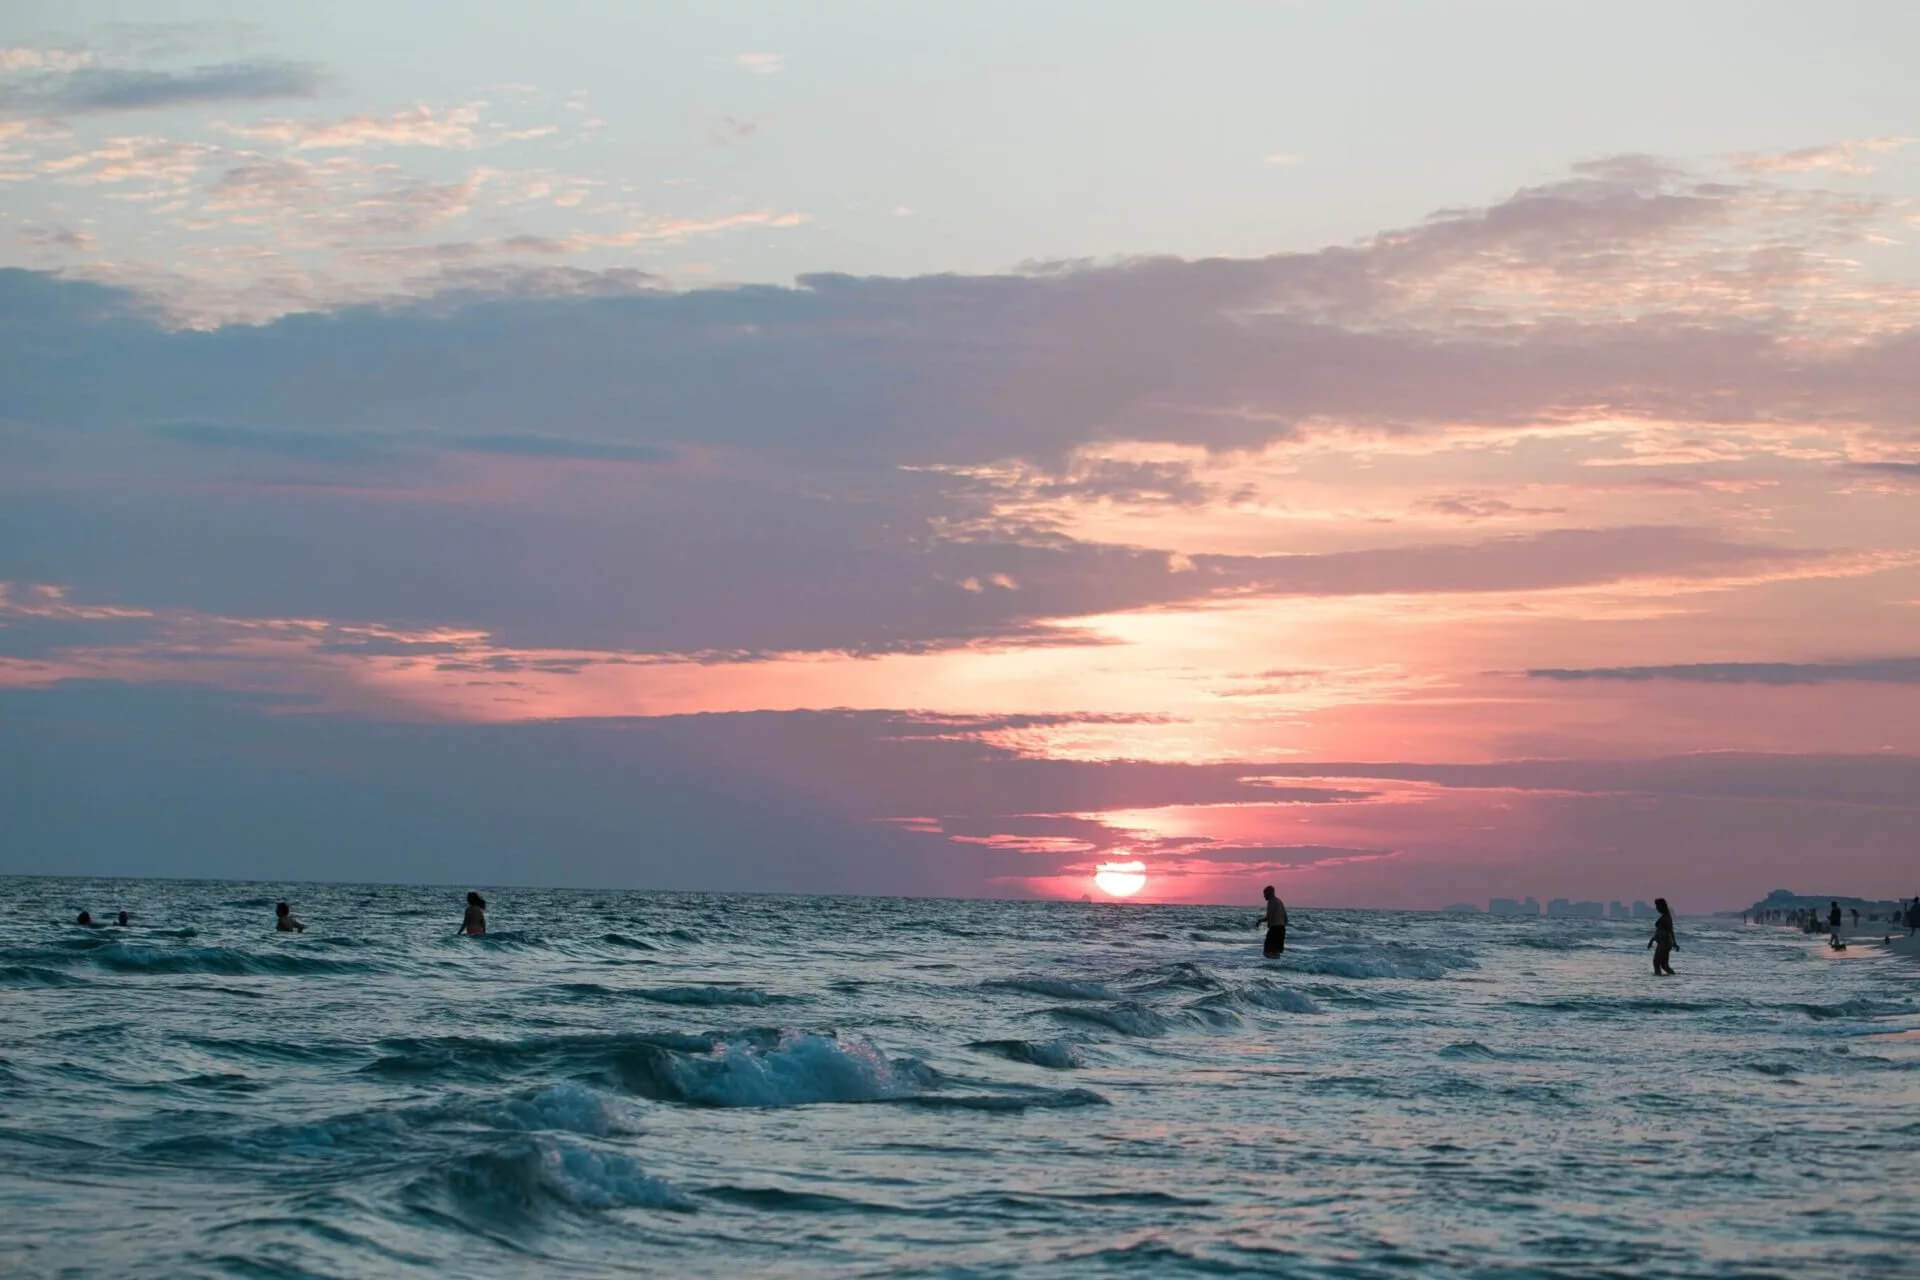 People Swimming in Ocean at Sunset